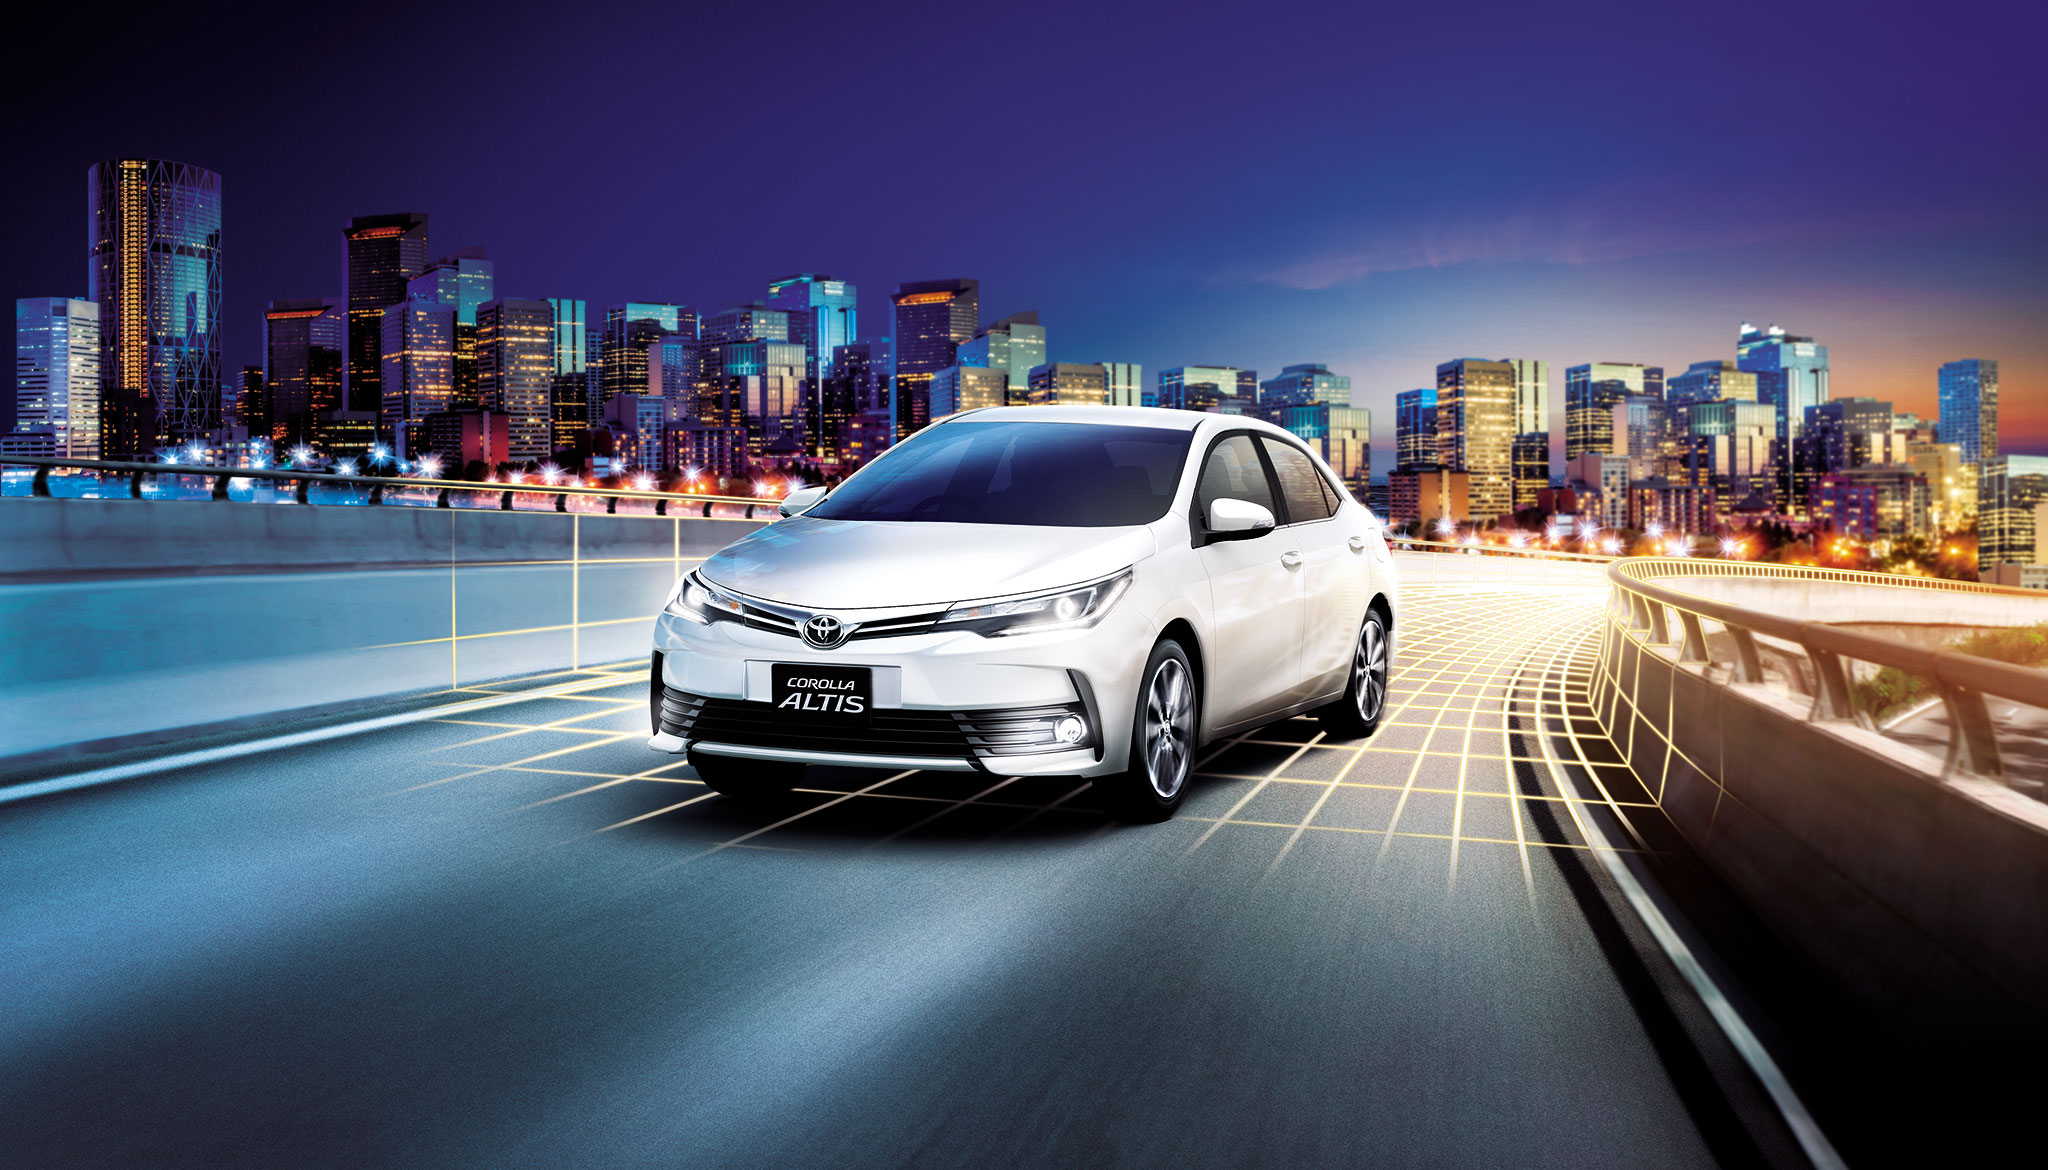 Toyota Corolla Accessories >> Toyota Corolla Altis | The World's Best-selling Car